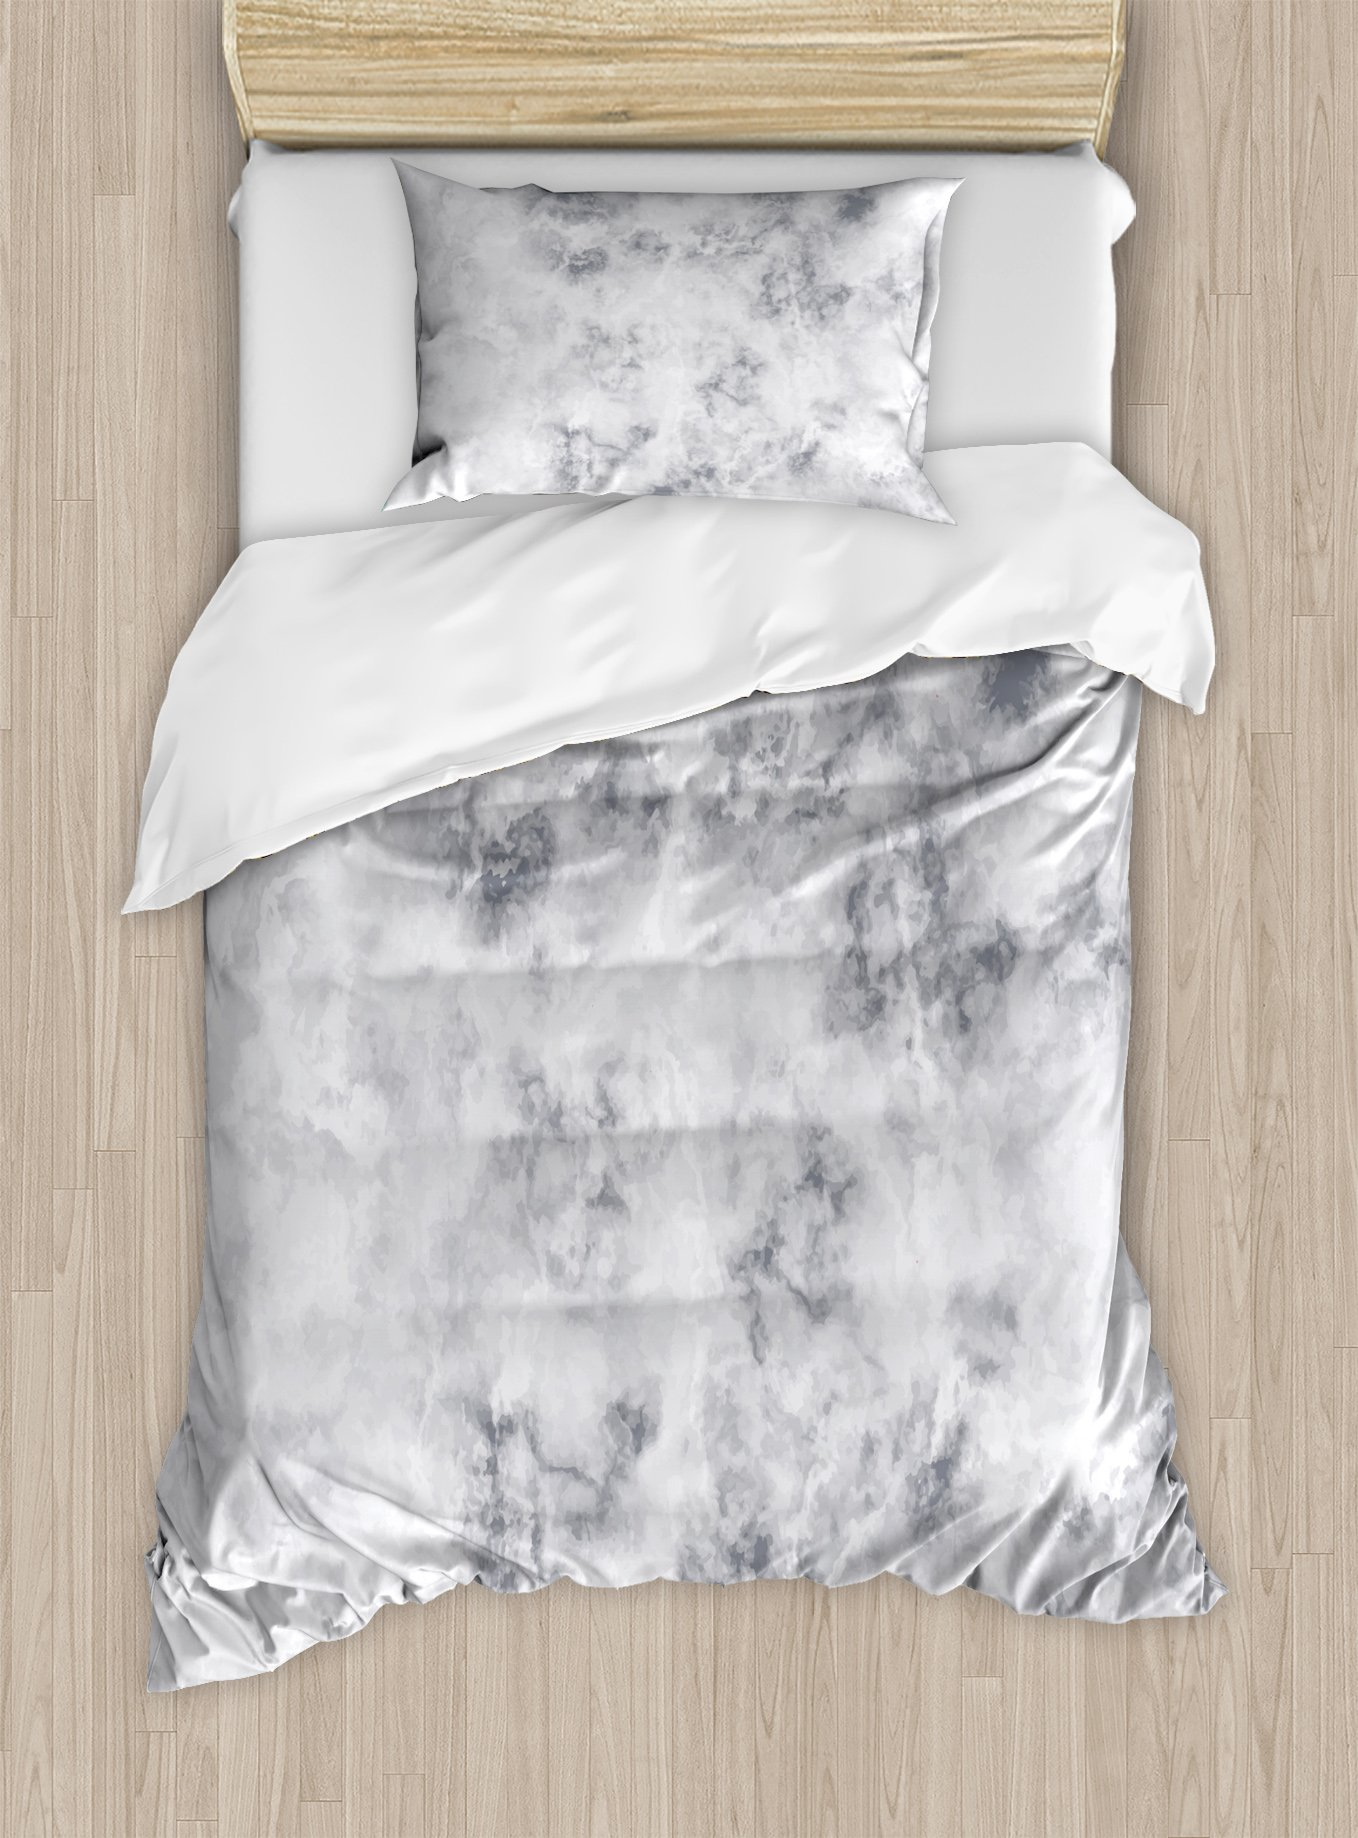 Ambesonne Marble Duvet Cover Set Twin Size, Granite Surface Pattern with Stormy Details Natural Mineral Formation Print, Decorative 2 Piece Bedding Set with 1 Pillow Sham, Pale Grey Dust